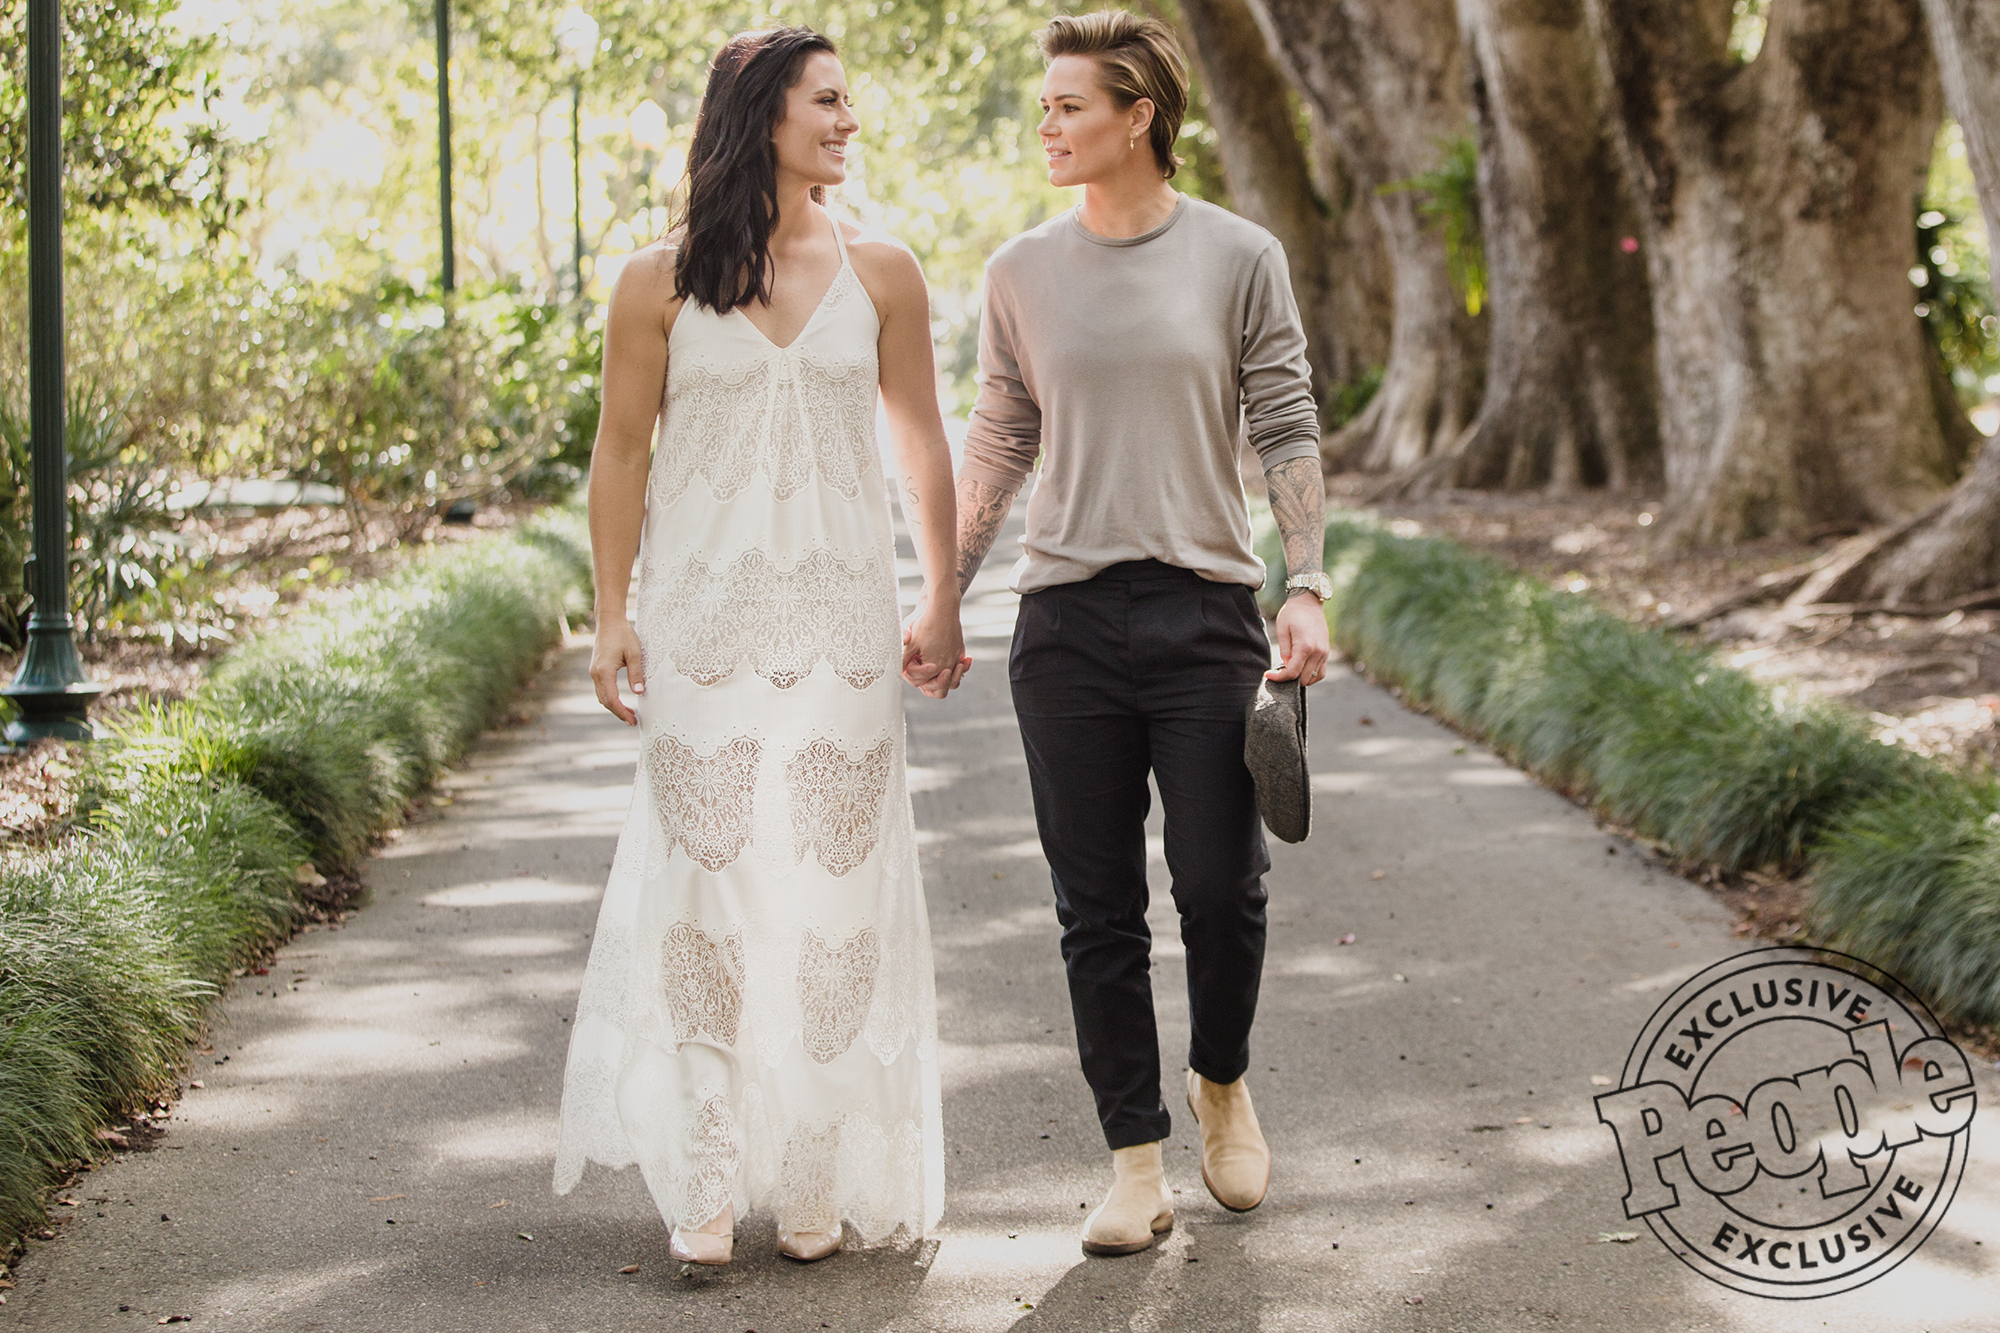 8fefb980d245a ... are happy for the love that Ali Krieger and Ashlyn Harris have found,  and although progress can be restrained and even temporarily reversed at  time, ...